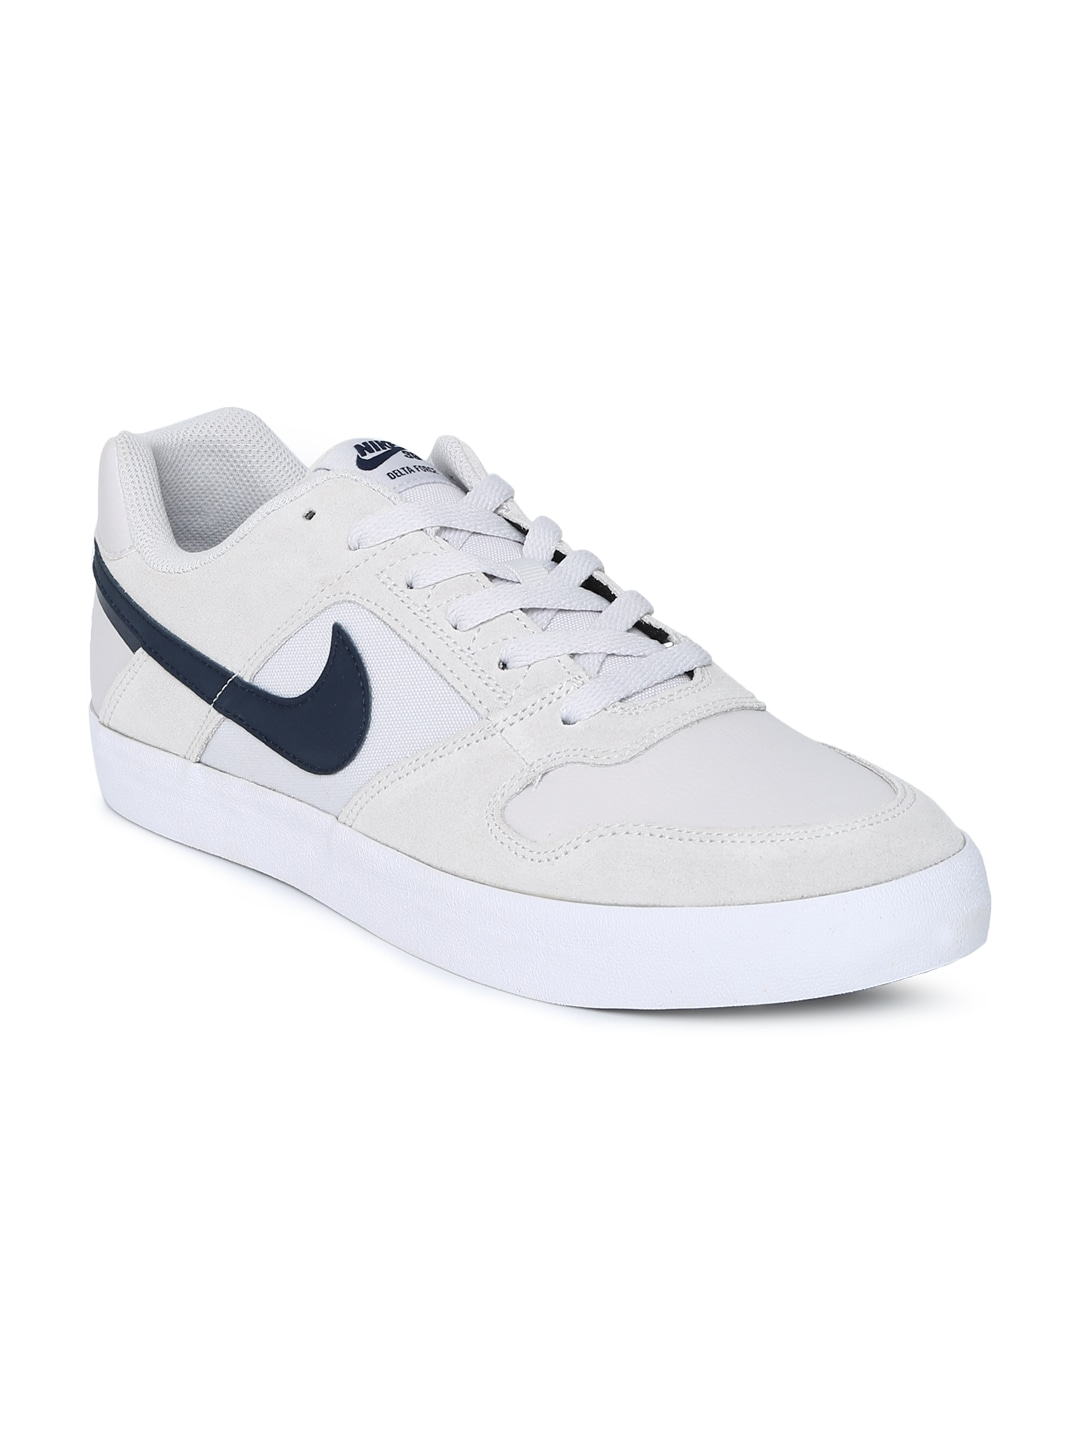 4f3910a56275 Shoes - Buy Shoes for Men